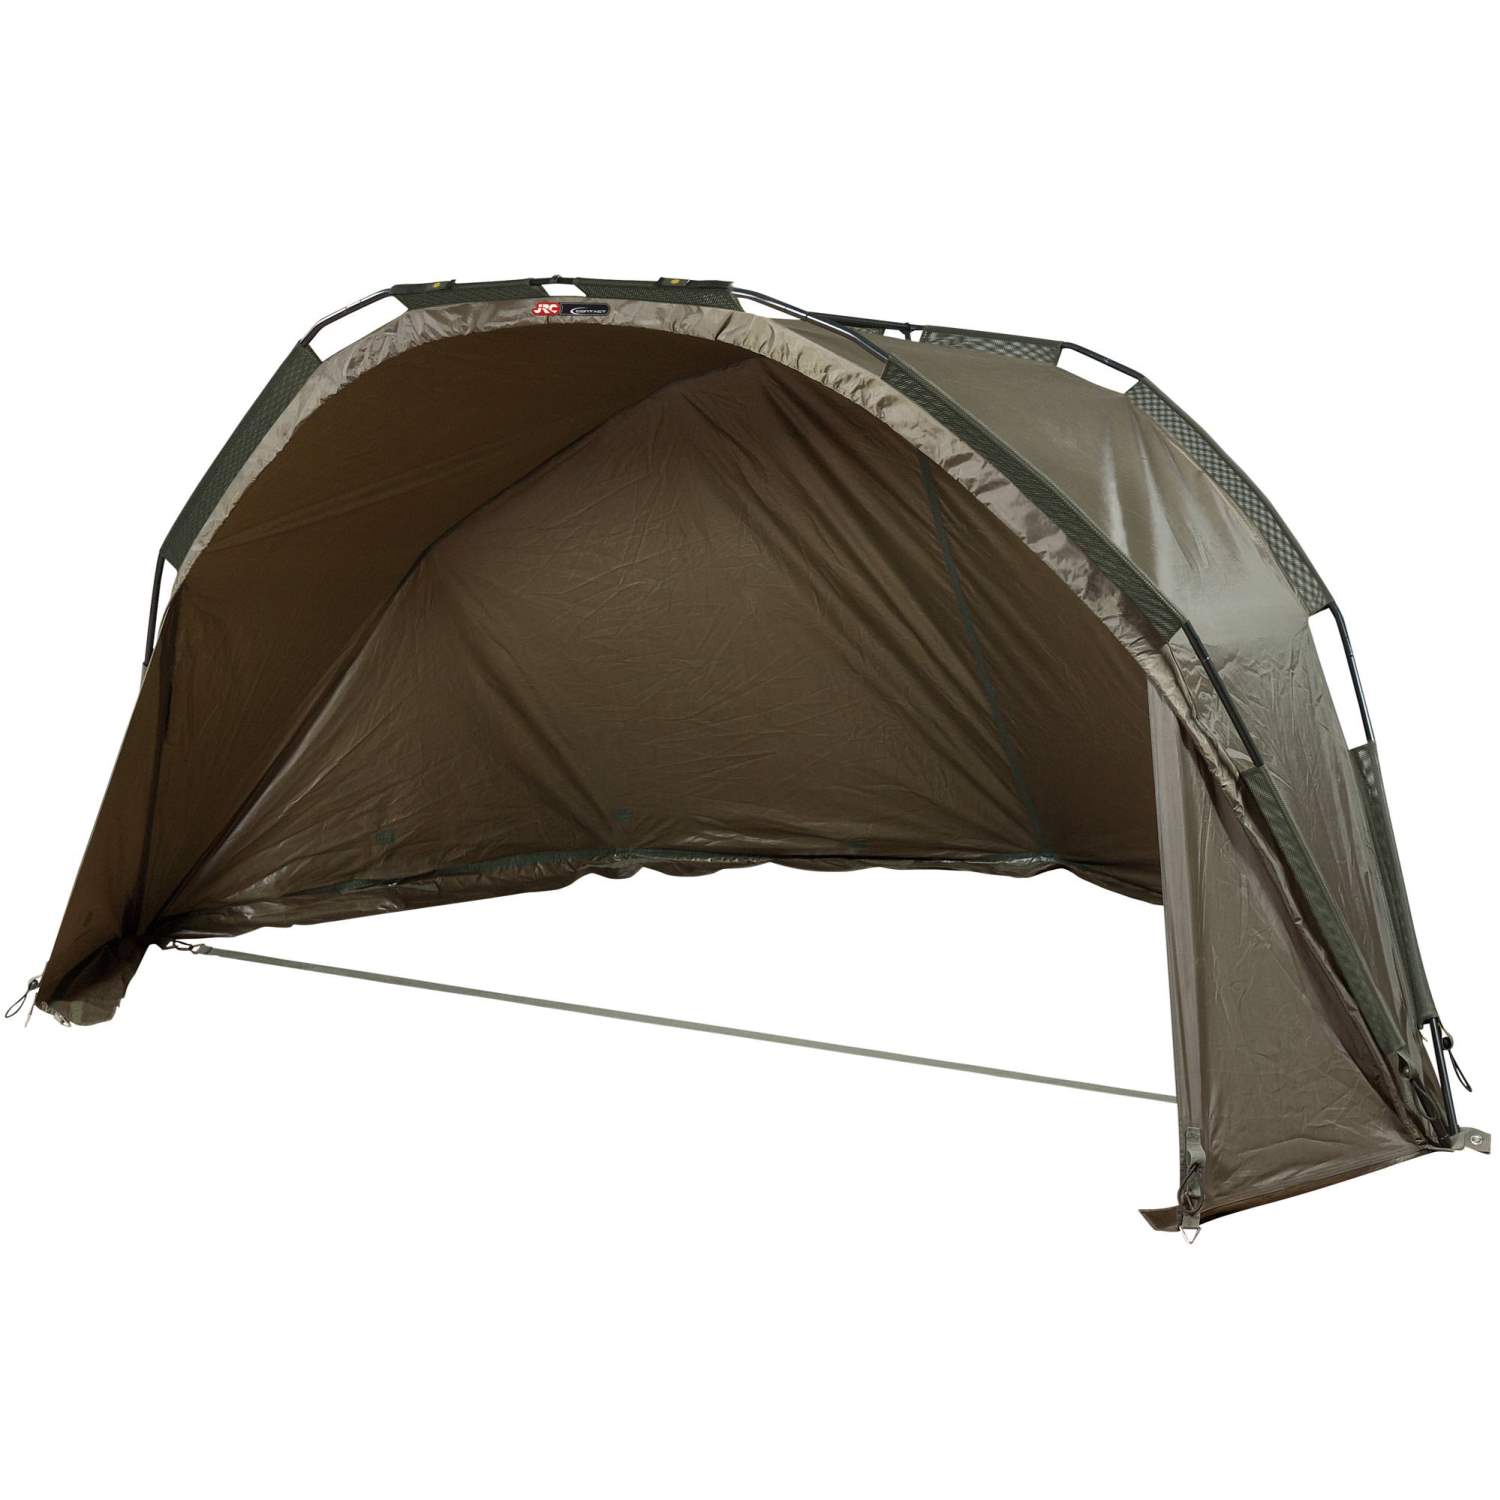 jrc contact brolly 270x190x130cm angelzelt zelt shelter karpfenzelt 5000mm ebay. Black Bedroom Furniture Sets. Home Design Ideas